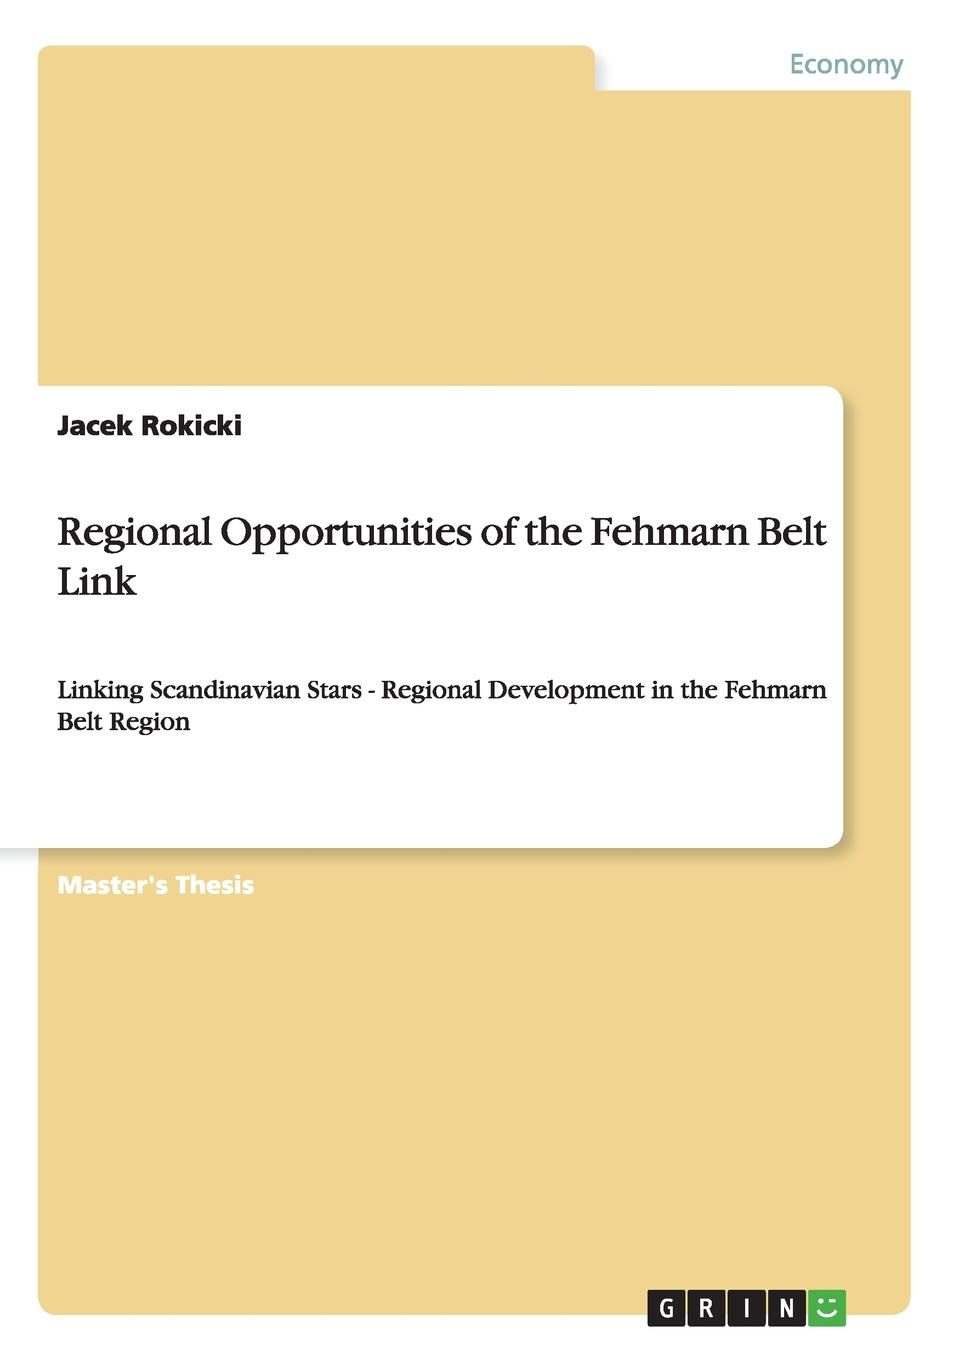 Jacek Rokicki Regional Opportunities of the Fehmarn Belt Link 2016 the new recommendation of the two sides of the two sides of the pineapple service women s clothing split body and european